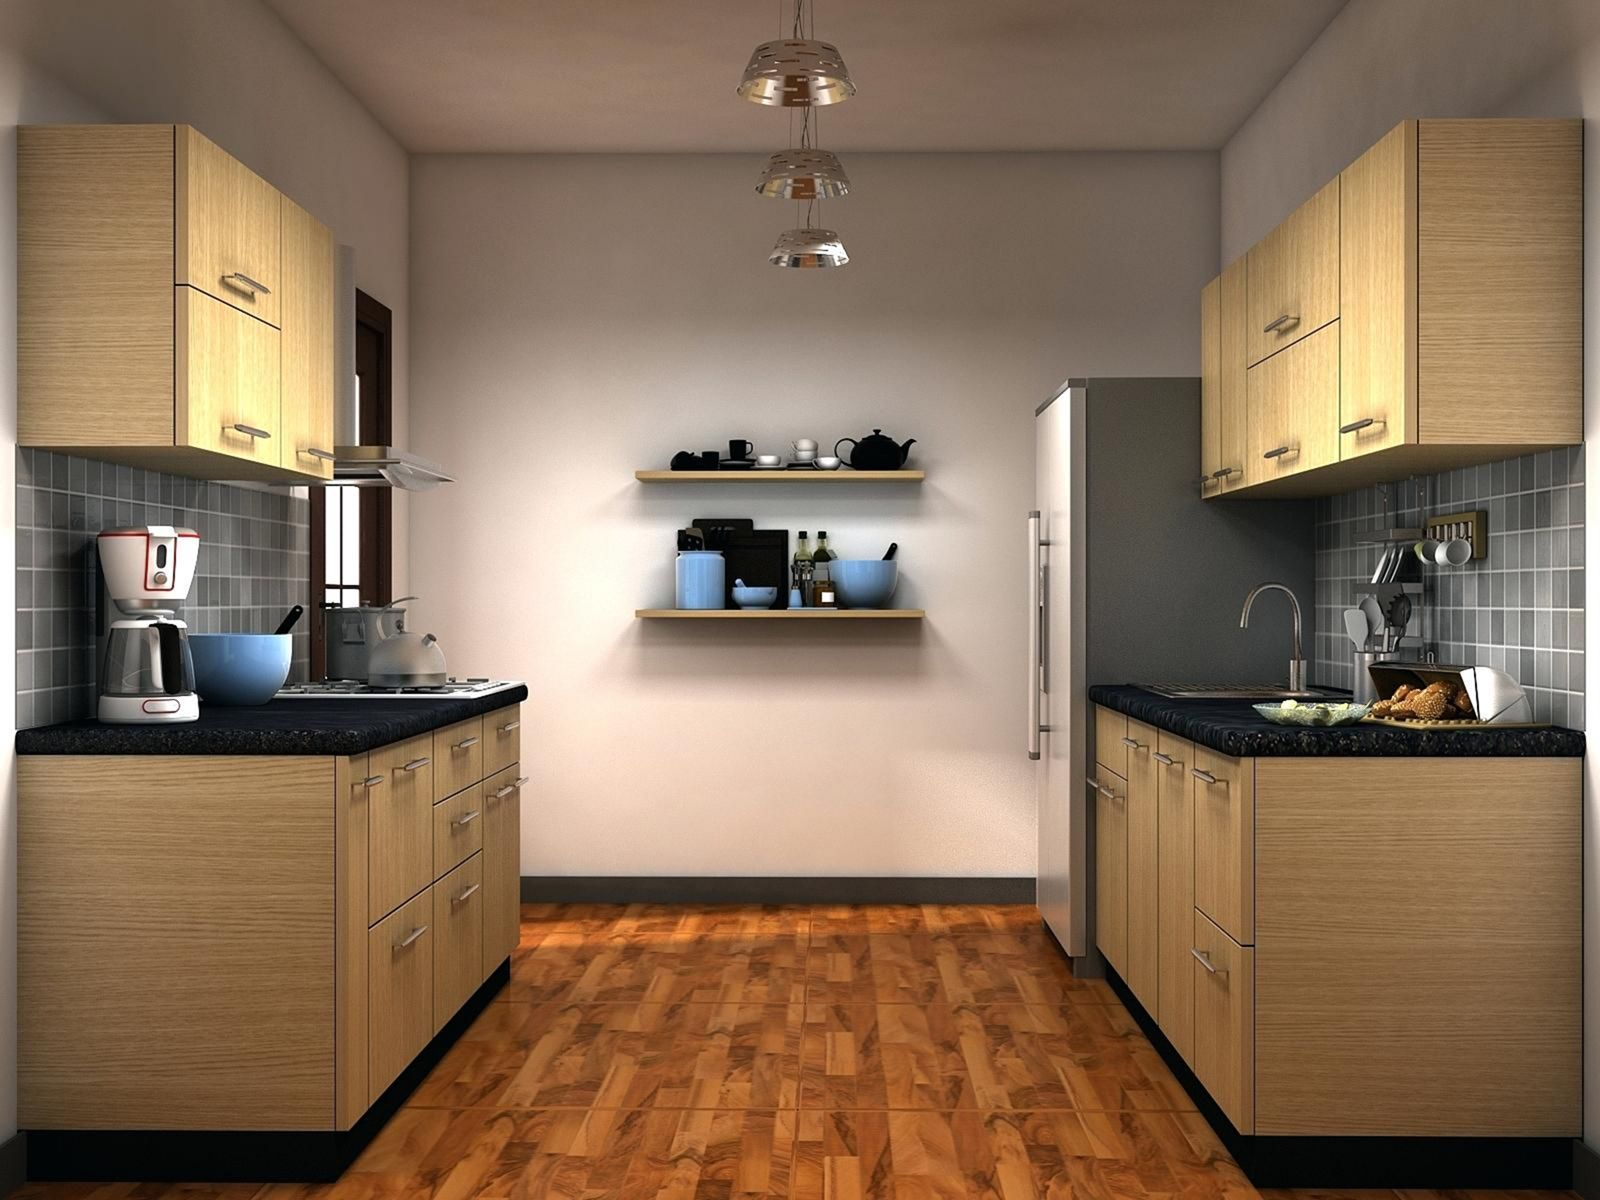 Top 25 Small Kitchen Design Ideas On A Budget For Amazing Cooking